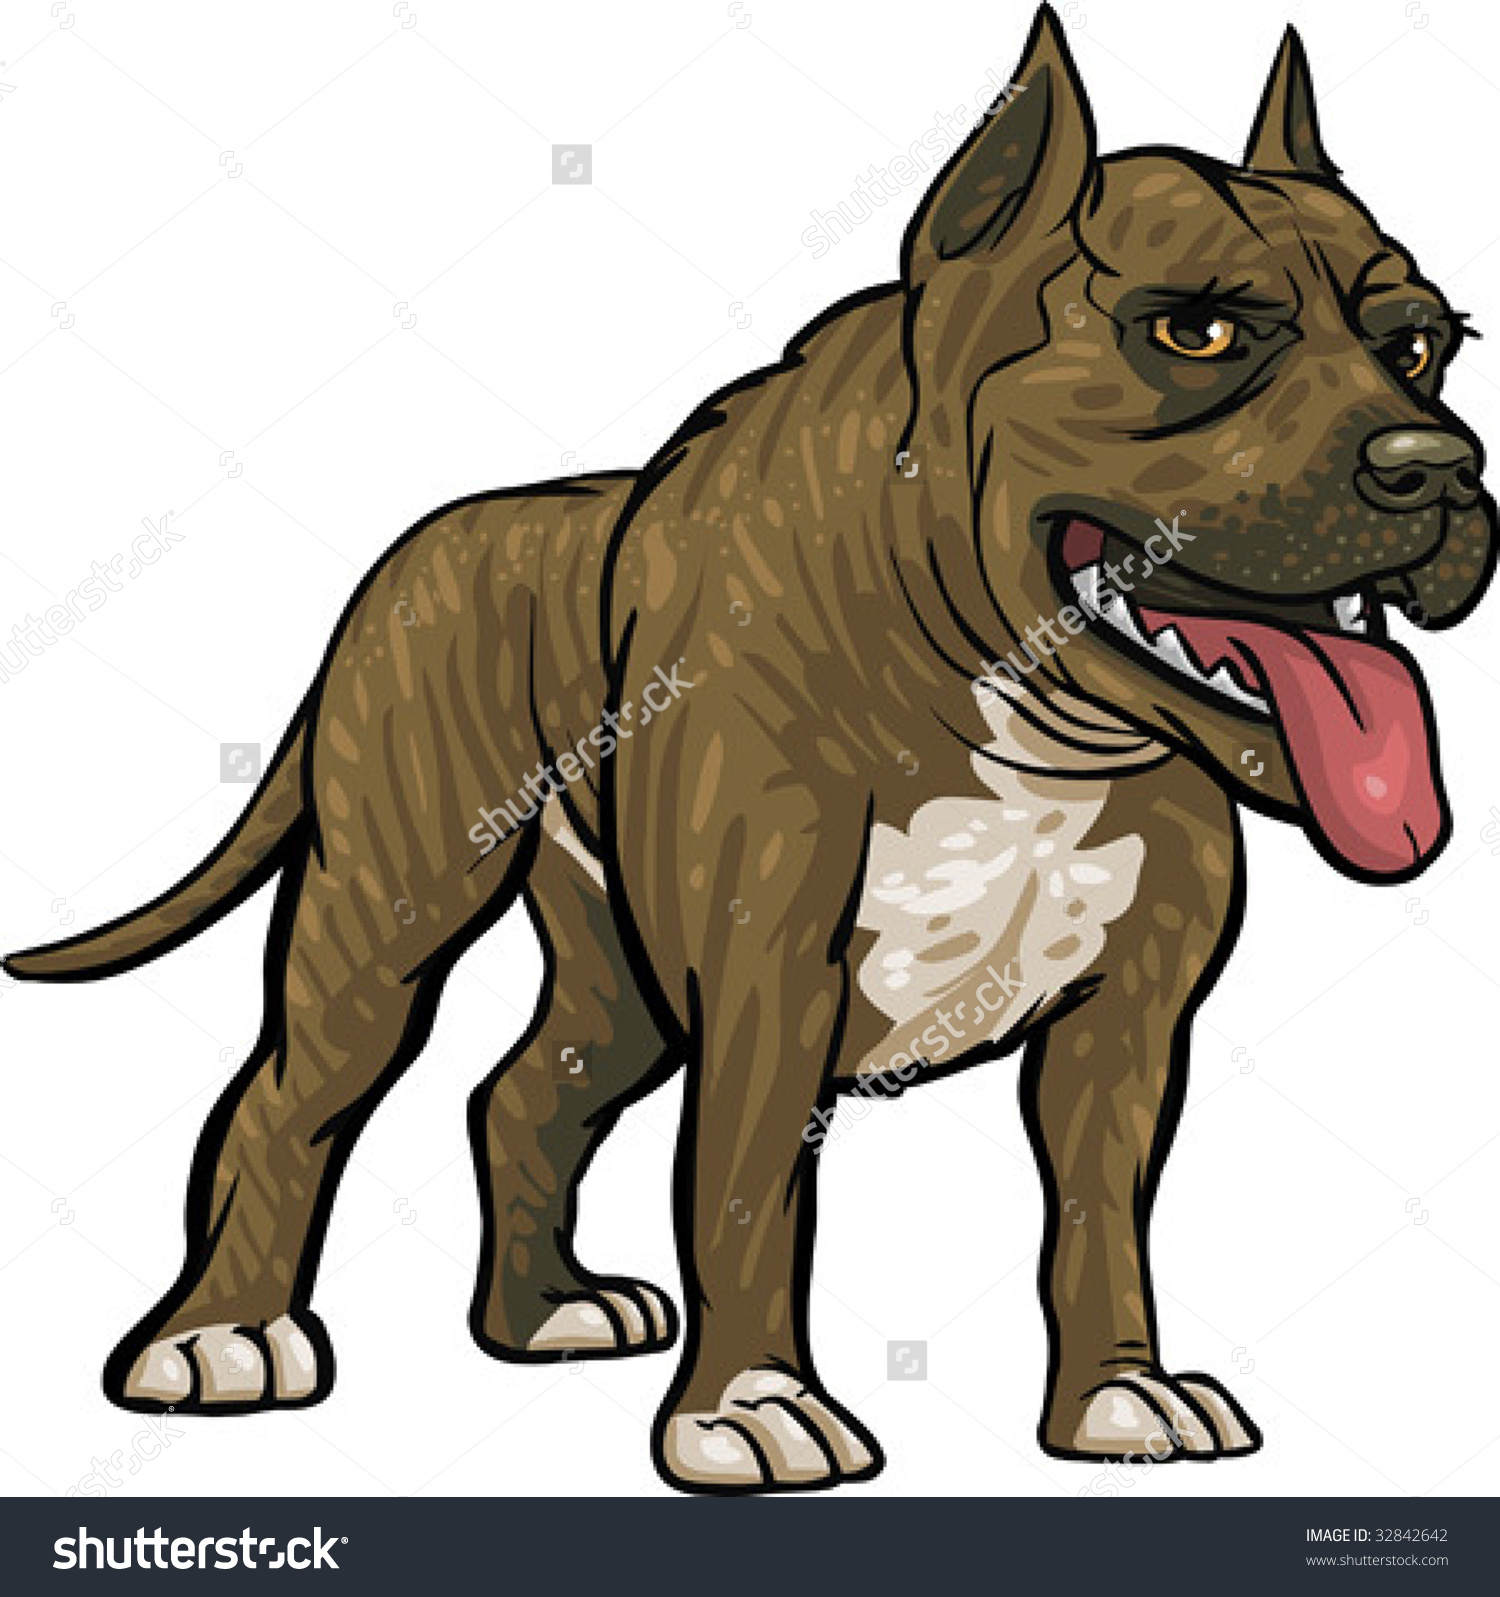 American Pit Bull Terrier clipart #19, Download drawings